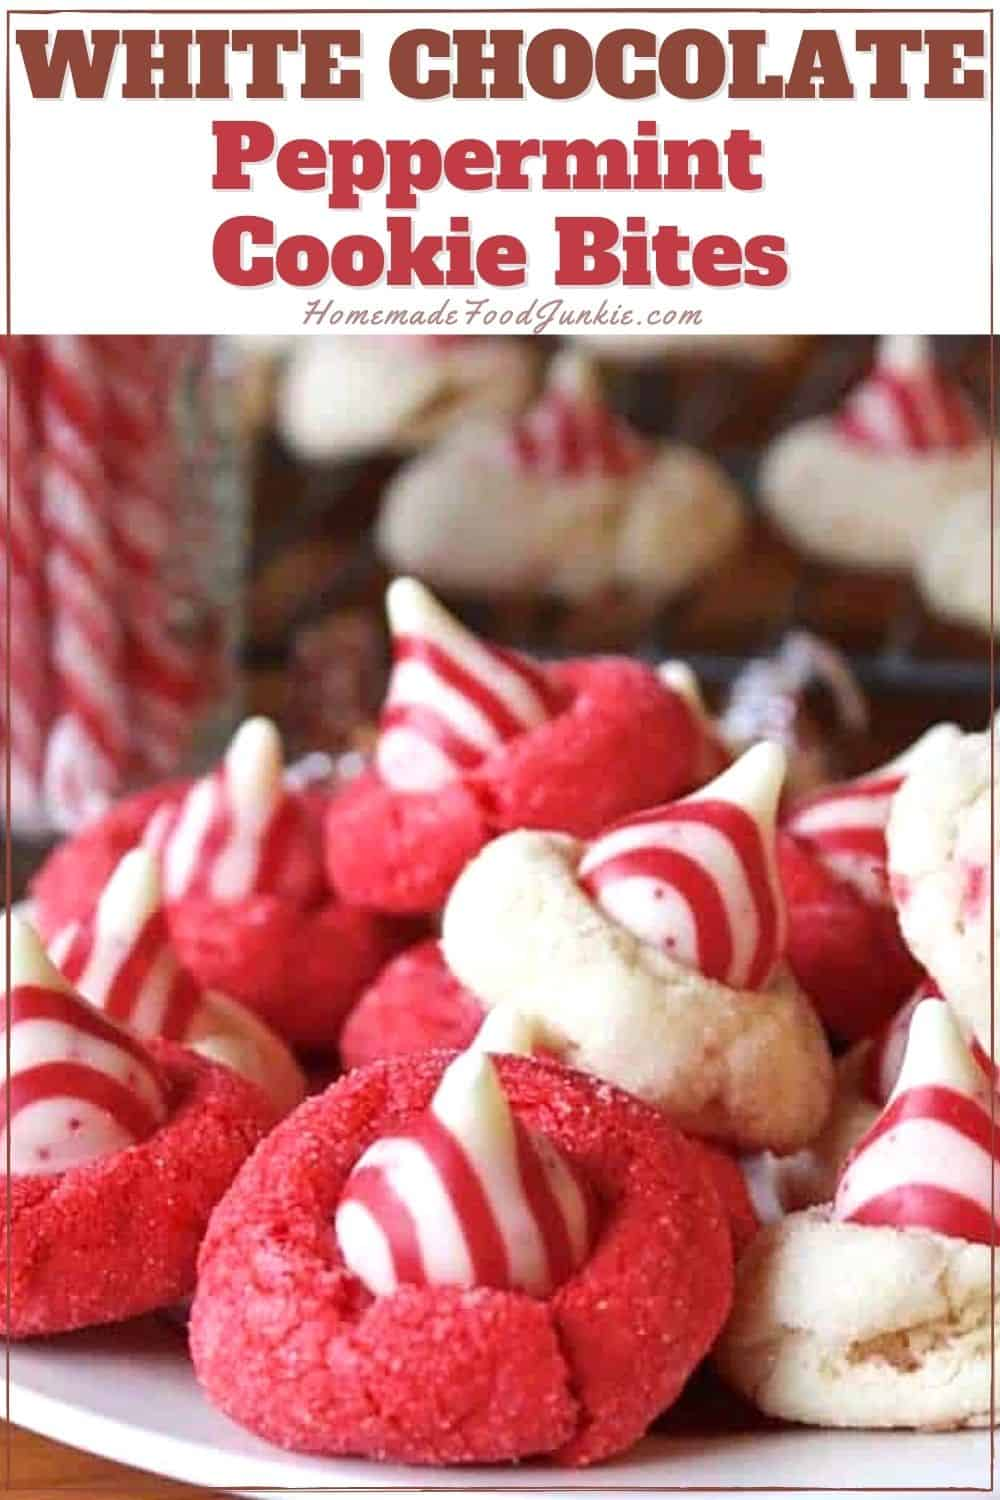 White Chocolate Peppermint Cookie Bites-Pin Image